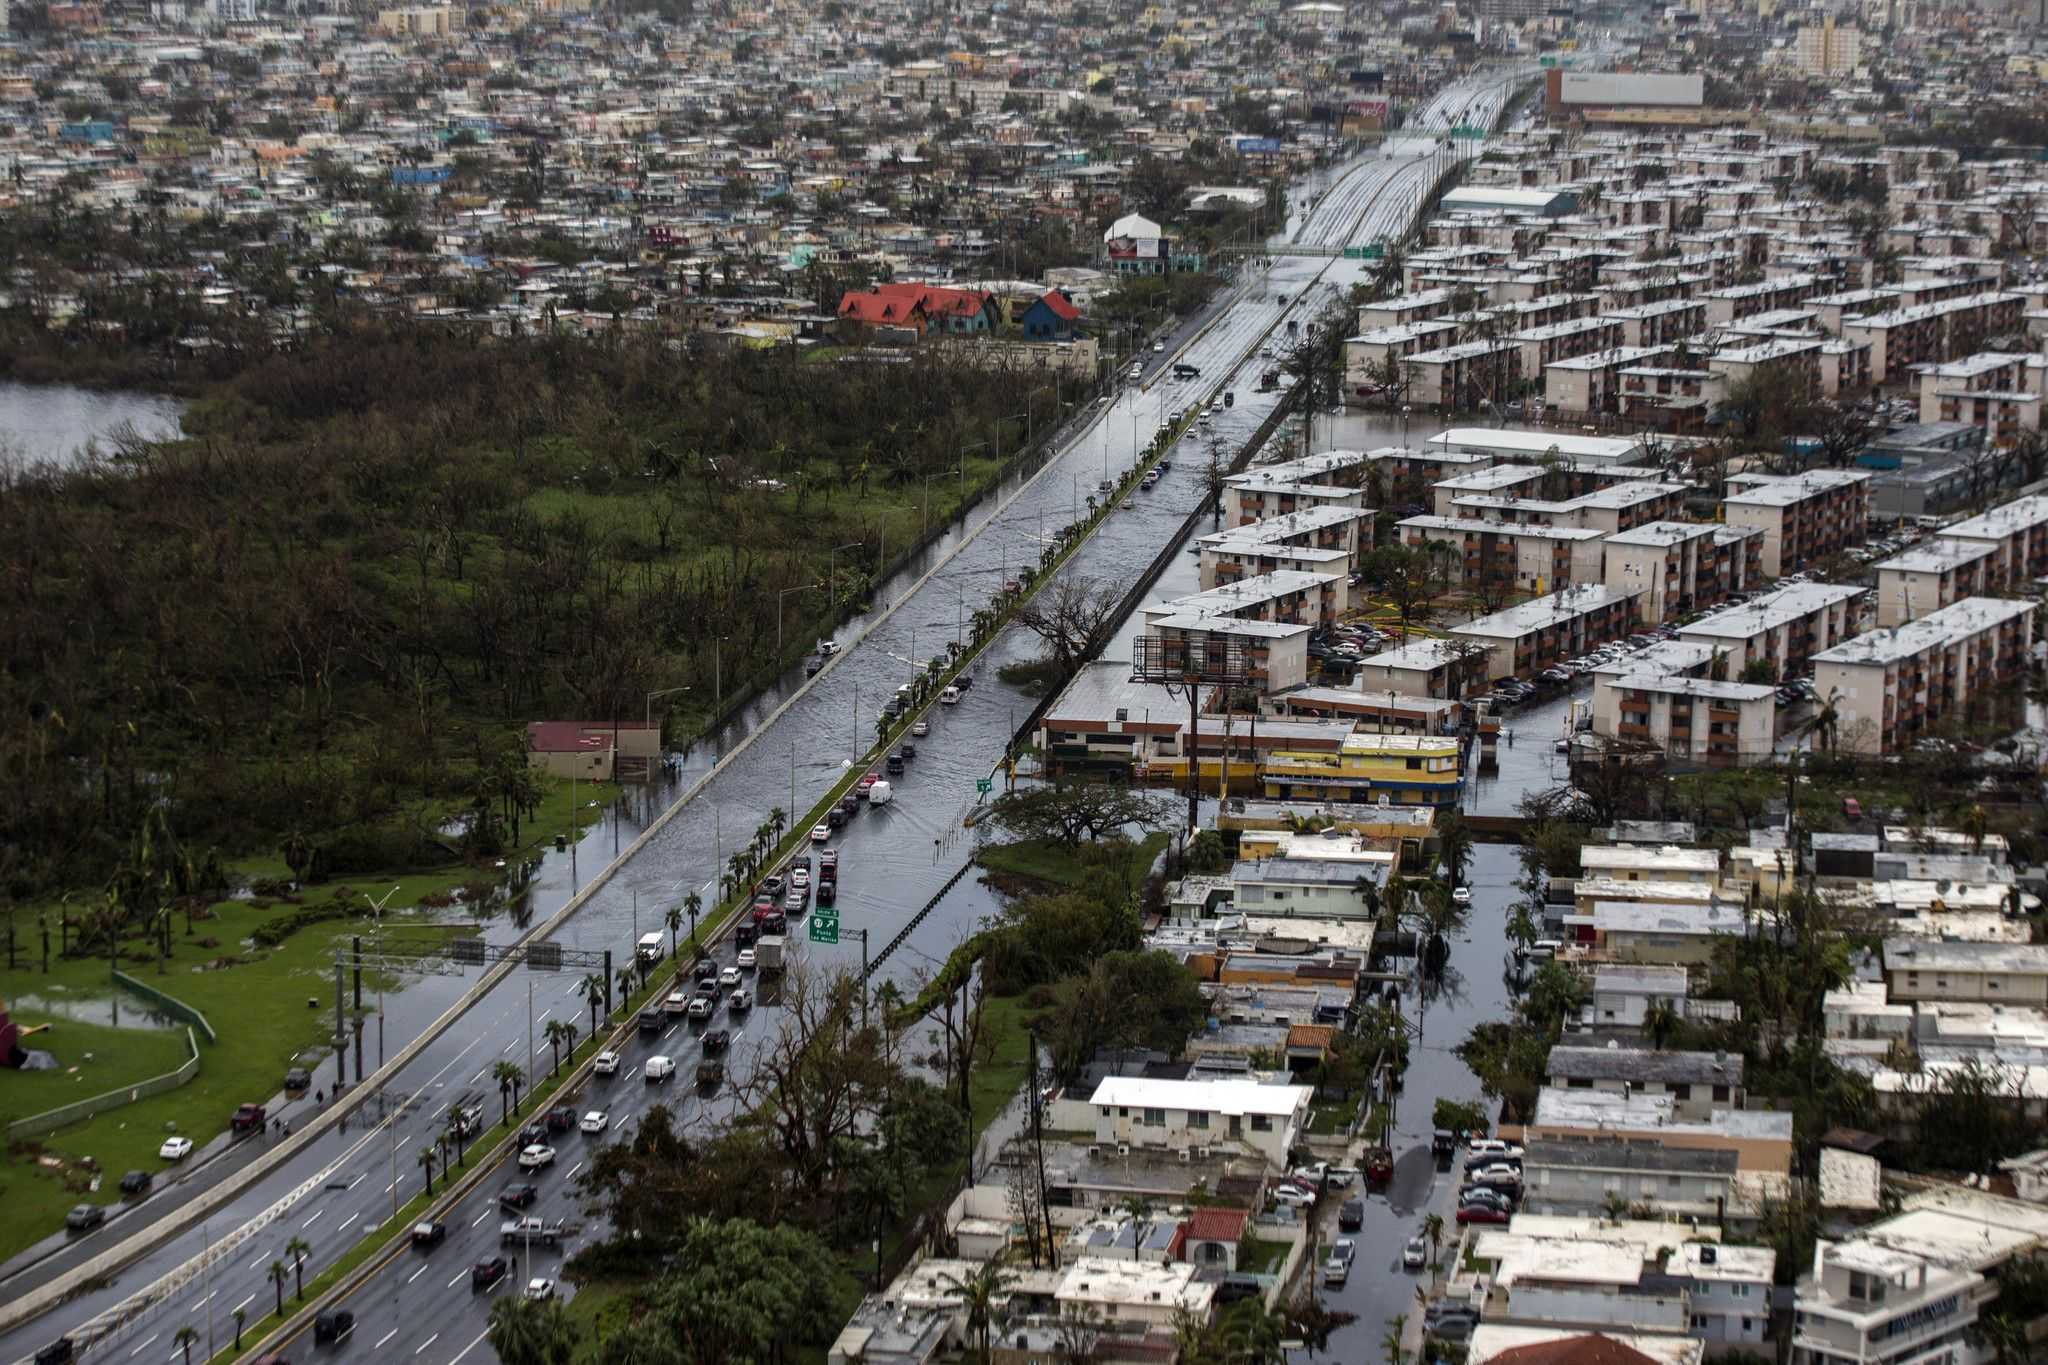 Aid begins to flow to Puerto Rico, facing a growing humanitarian crisis in Maria's aftermath - Chicago Tribune